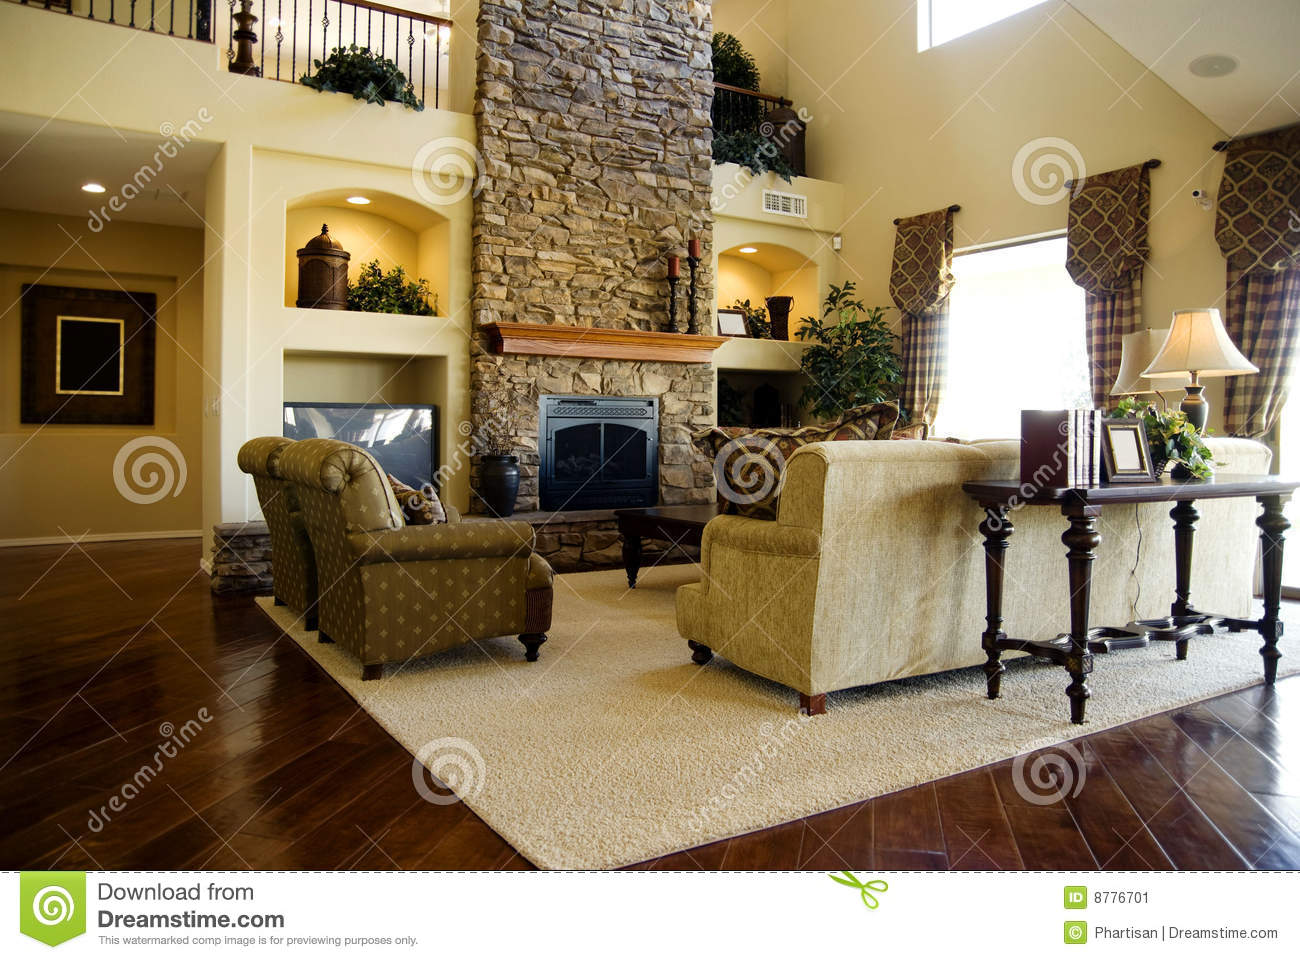 Hard wood flooring in living room area stock image image Carpet or wooden floor in living room